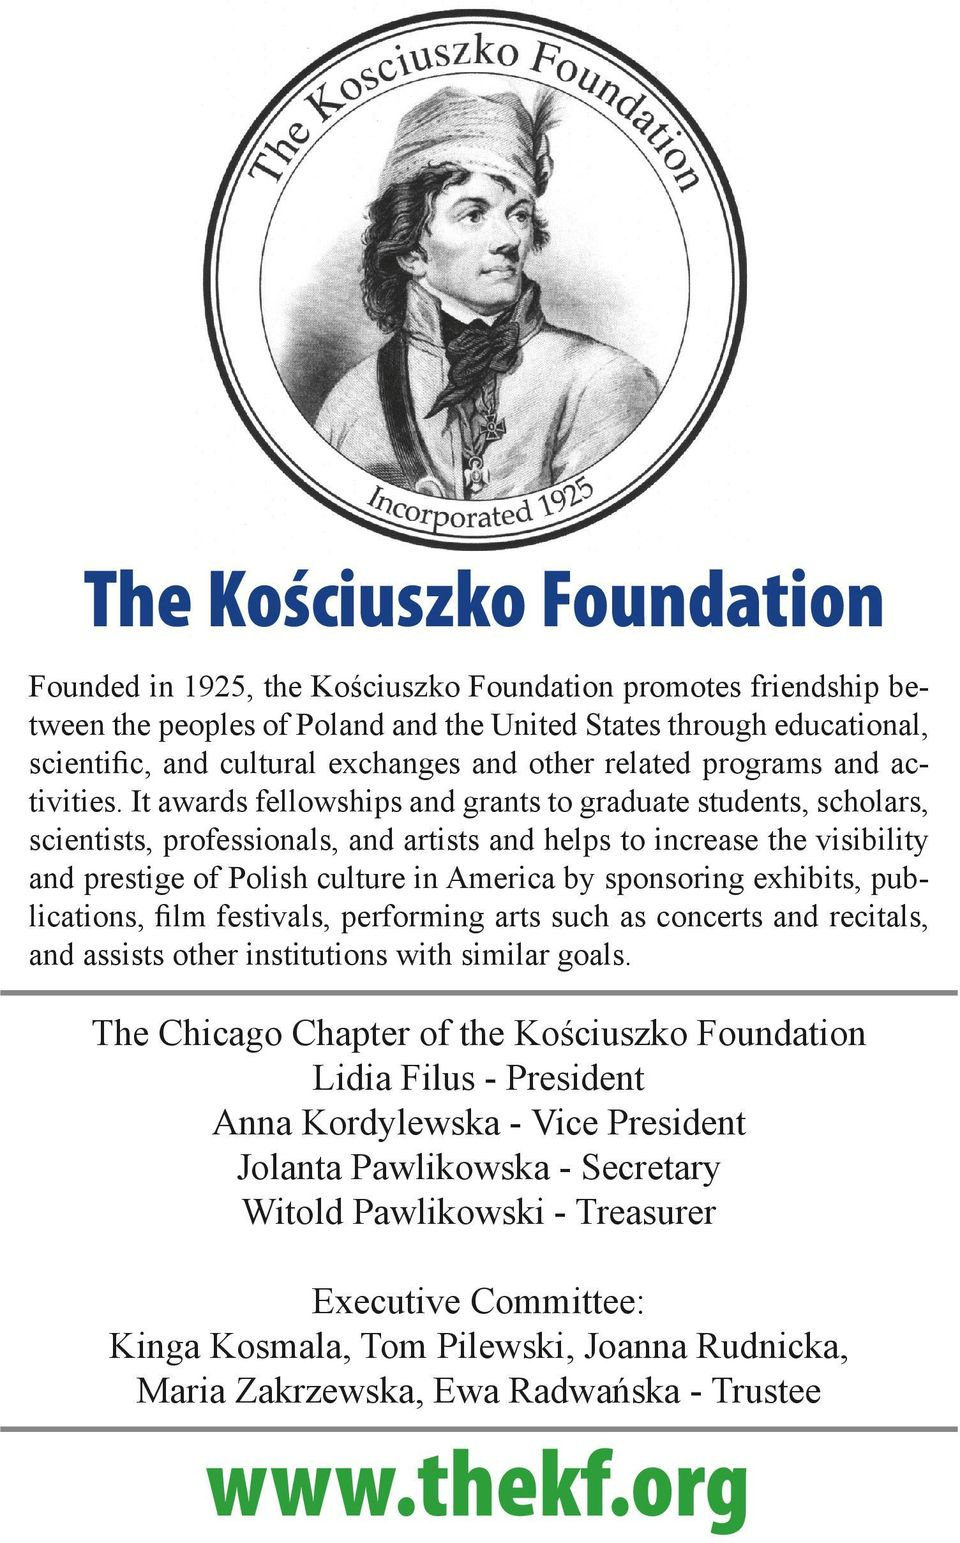 It awards fellowships and grants to graduate students, scholars, scientists, professionals, and artists and helps to increase the visibility and prestige of Polish culture in America by sponsoring